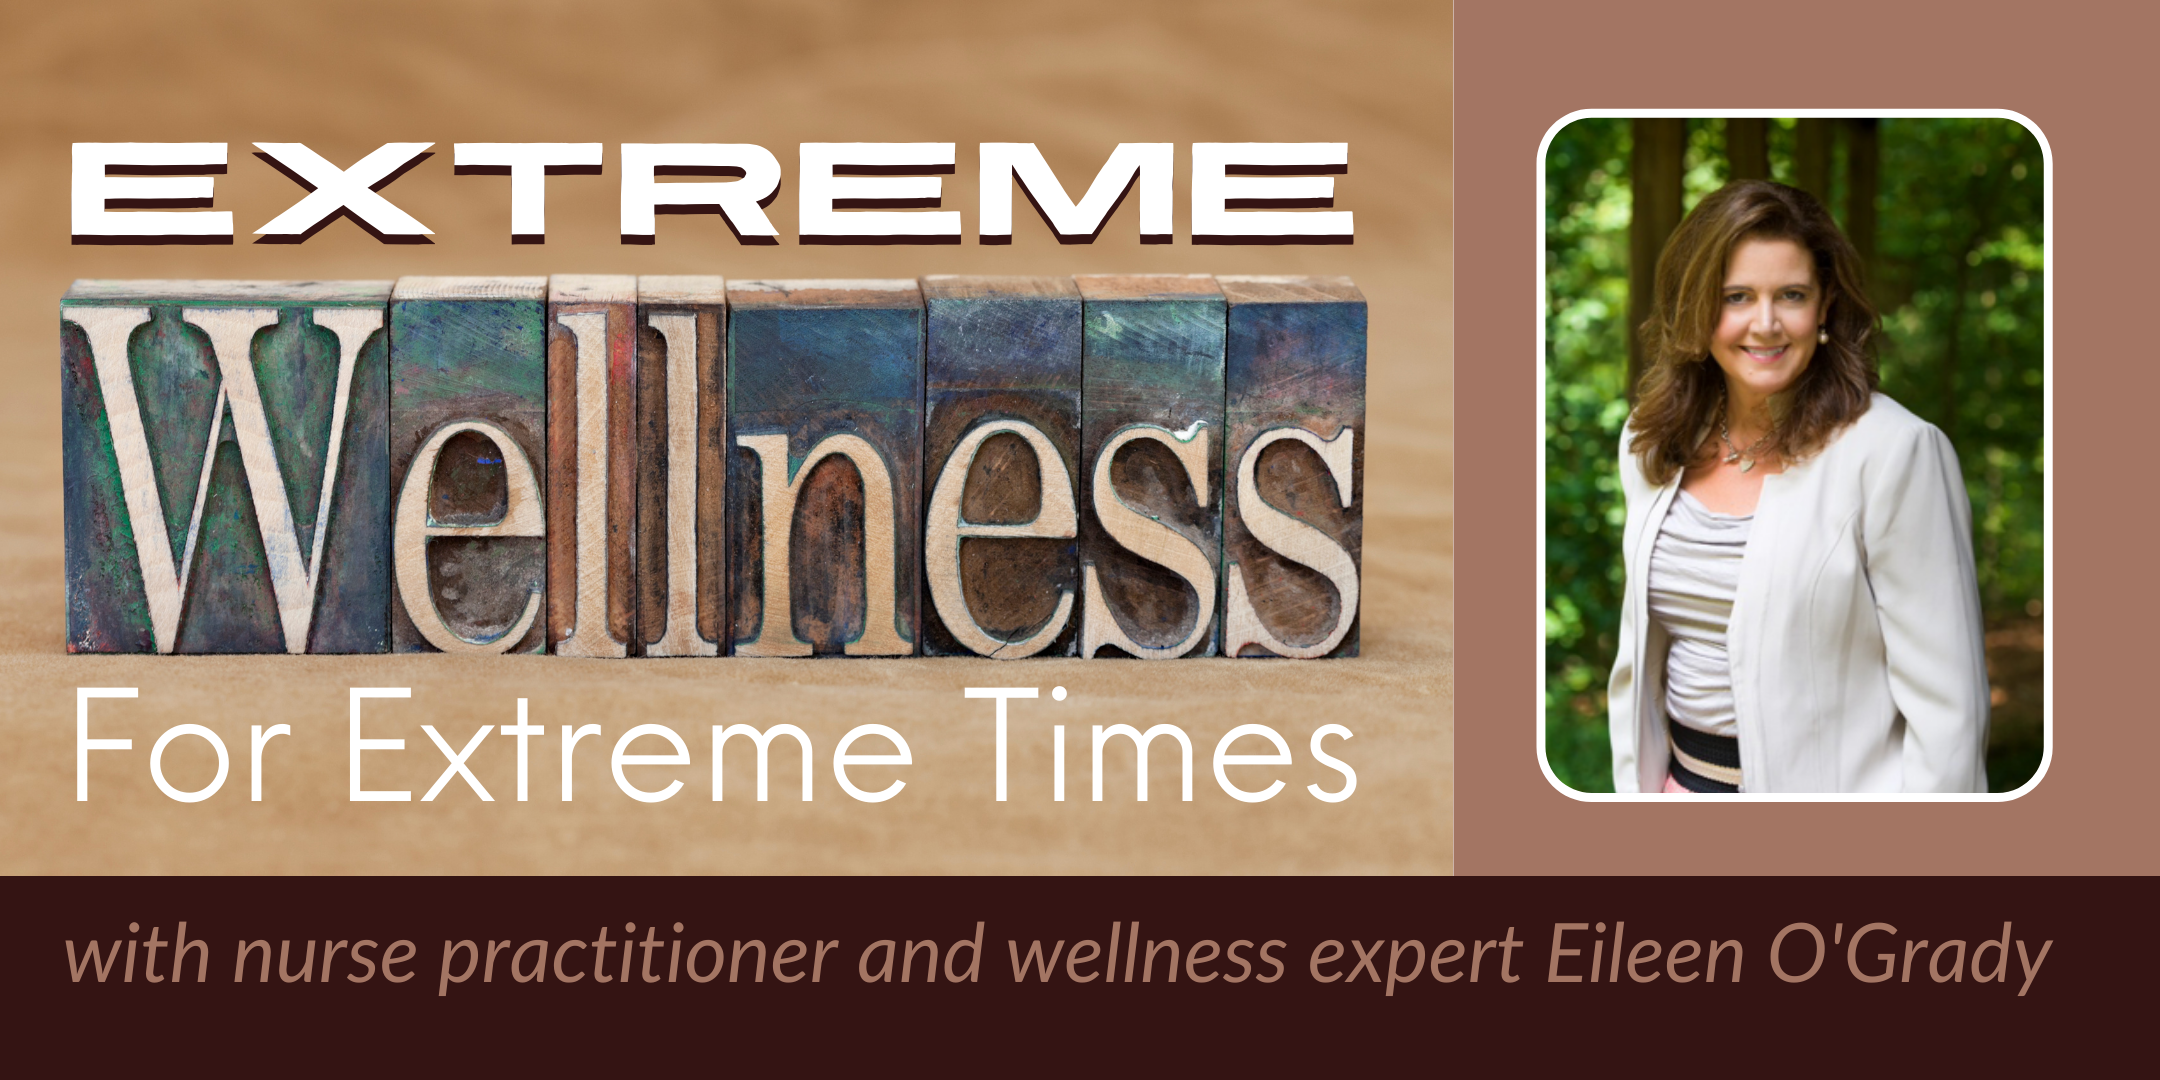 Extreme Wellness for Extreme Times with nurse practitioner and wellness expert Eileen O'Grady